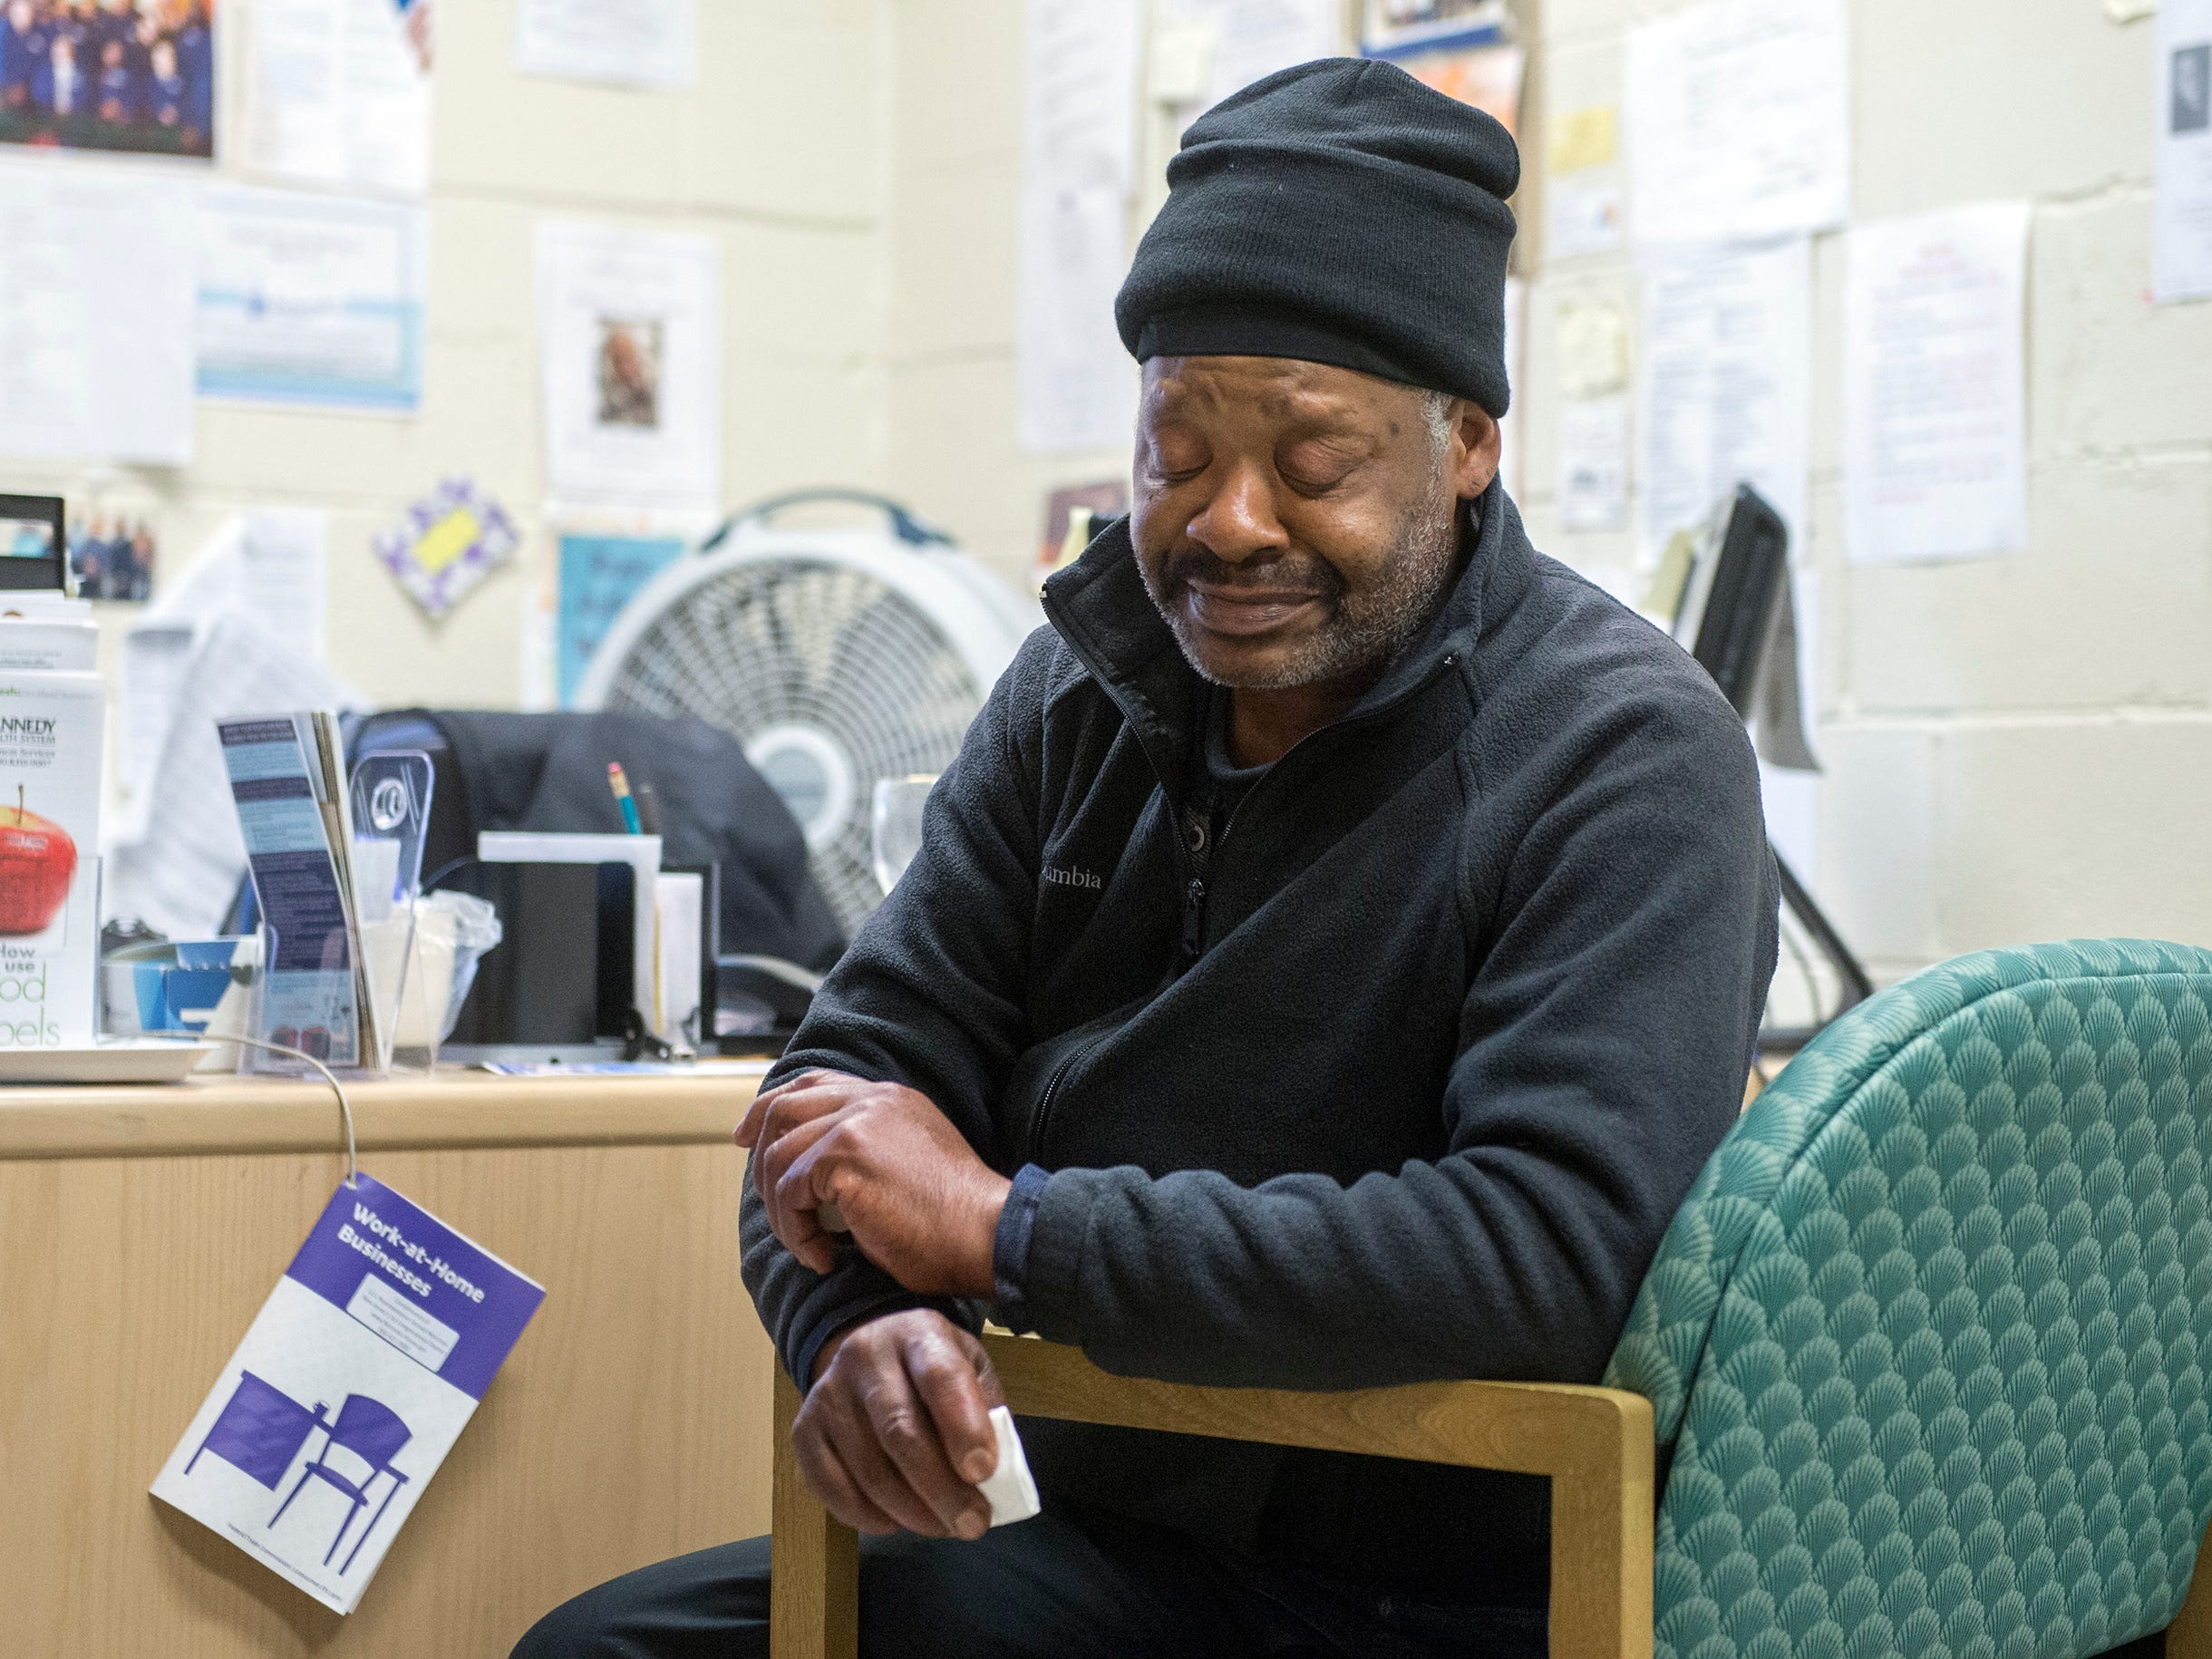 Robert Carroway, 60, who is homeless, becomes emotional as he reflects on his past circumstances Tuesday, Nov. 13, 2018 at Joseph's House in Camden, N.J. Carroway suffered multiple family tragedies over the years but is now on track to receive proper identification and social security.